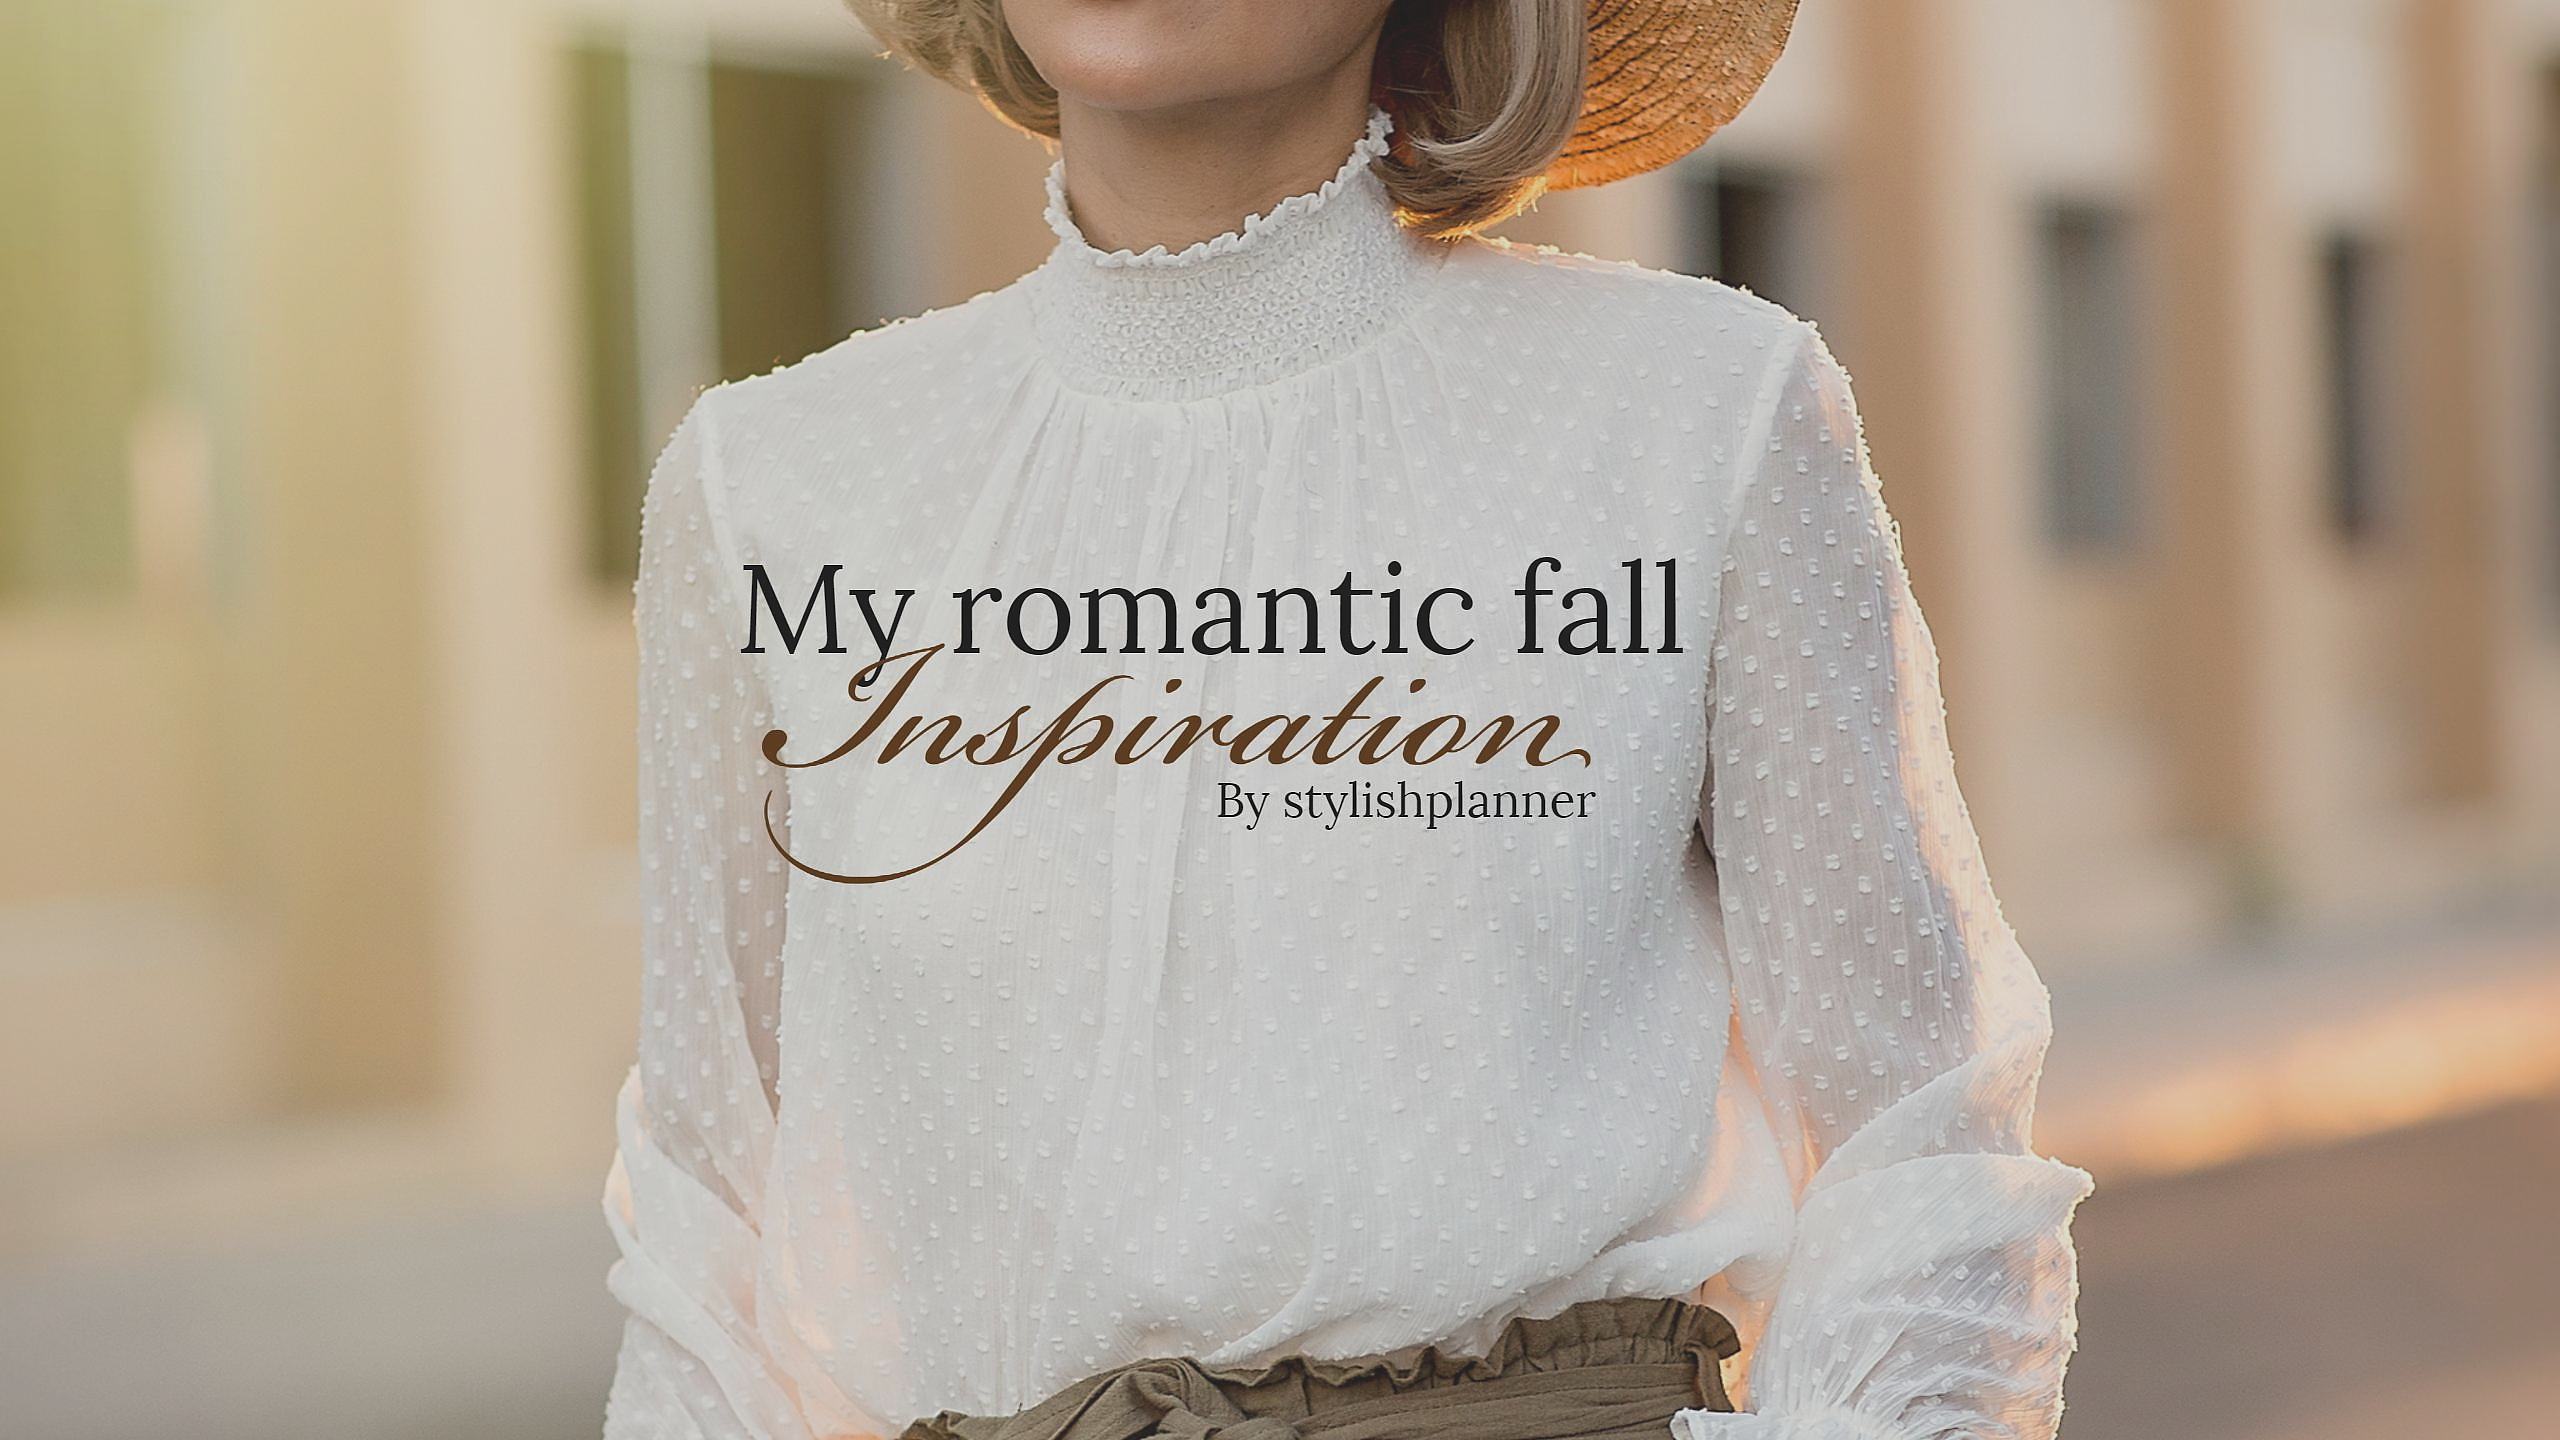 Romantic fall inspo